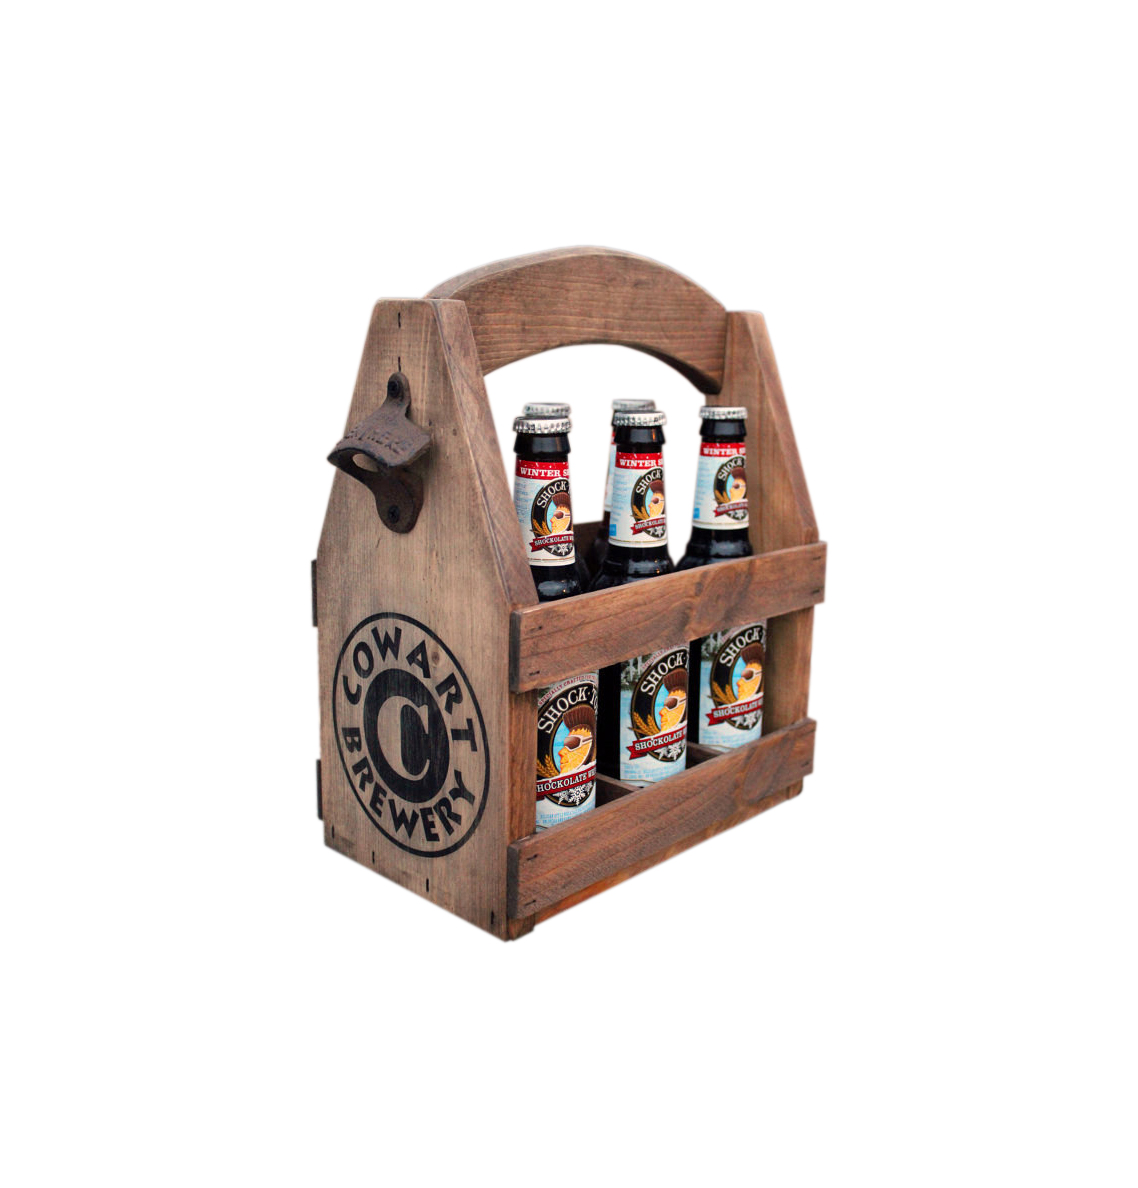 The Best Gifts For Dad. Wooden Six Pack Beer Tote